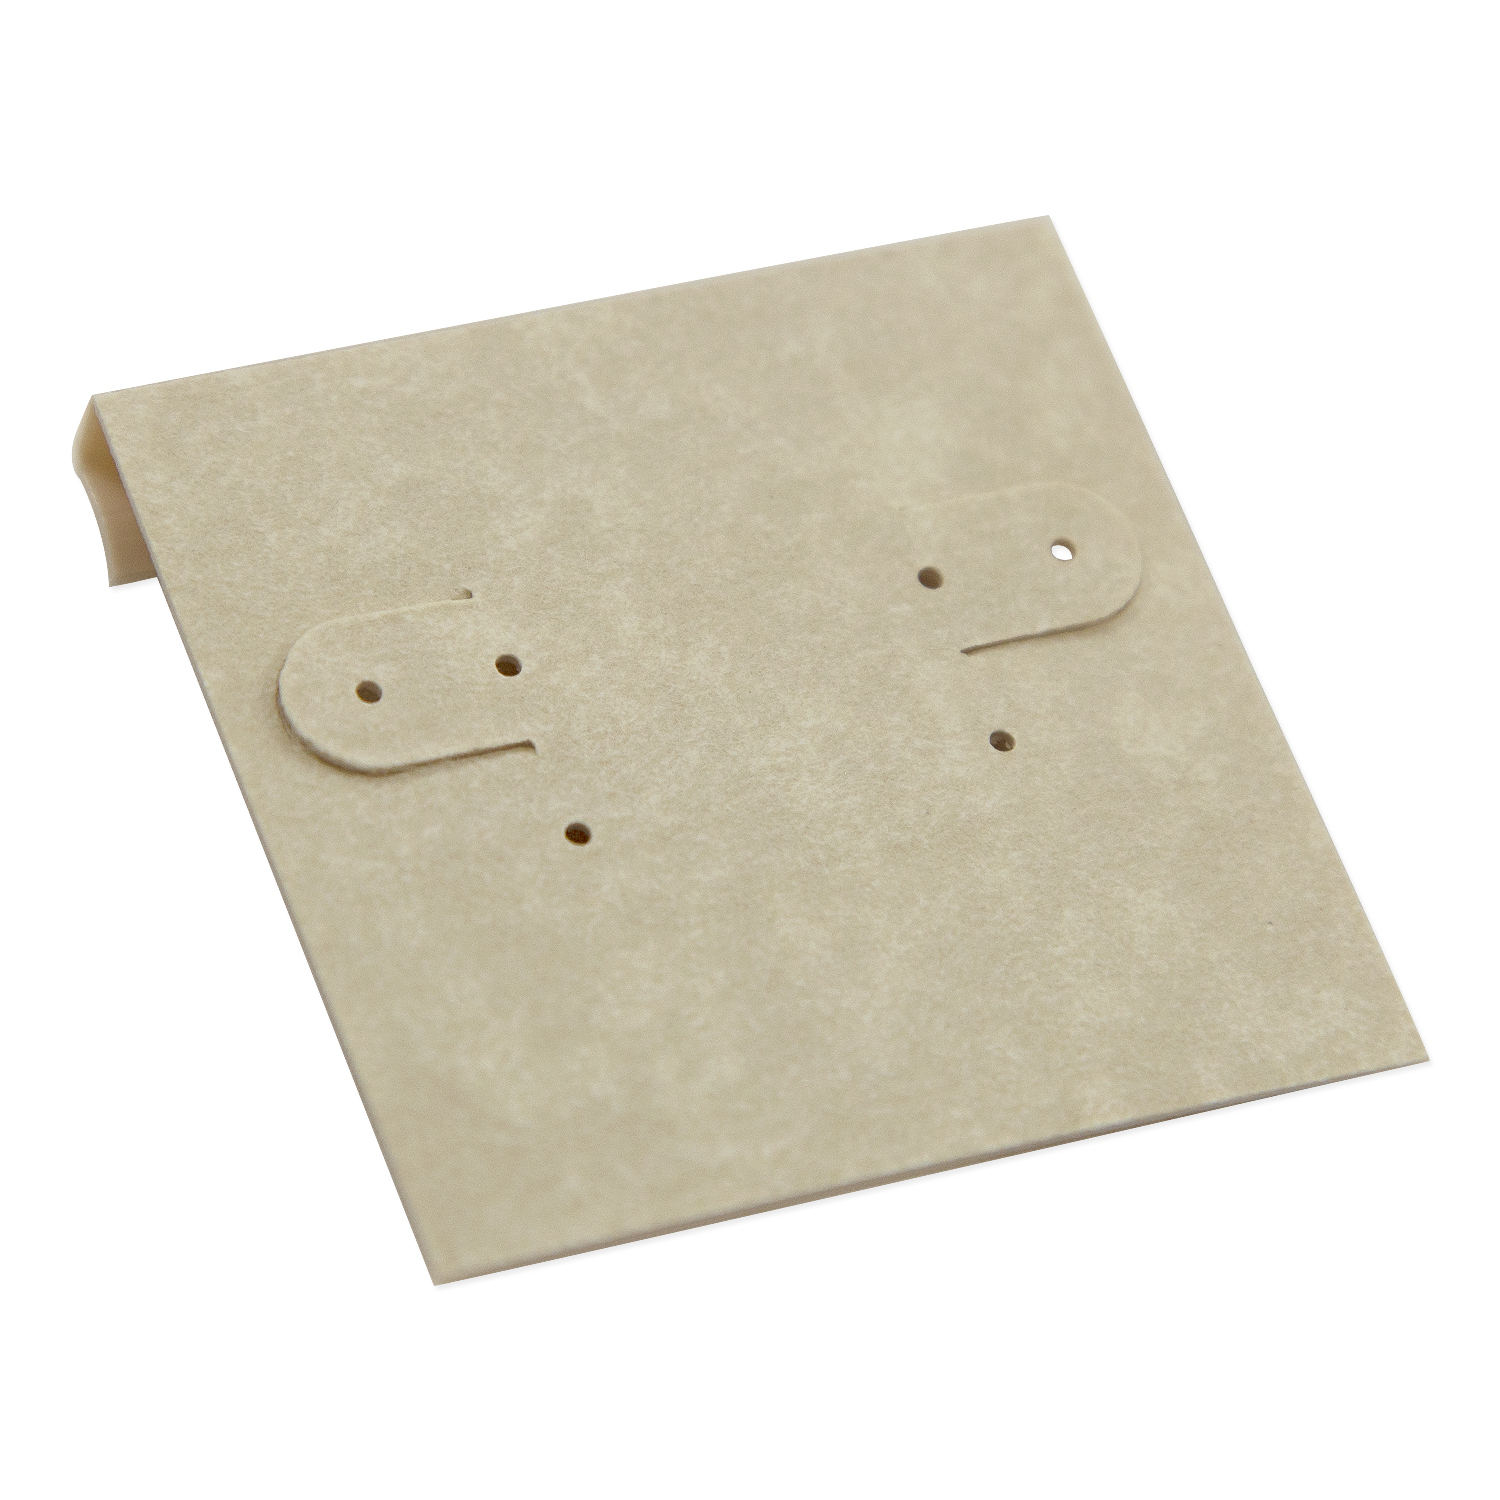 Hanging Earring Card Cream Parchment Paper Covered Plastic 2x2 100 Pcs